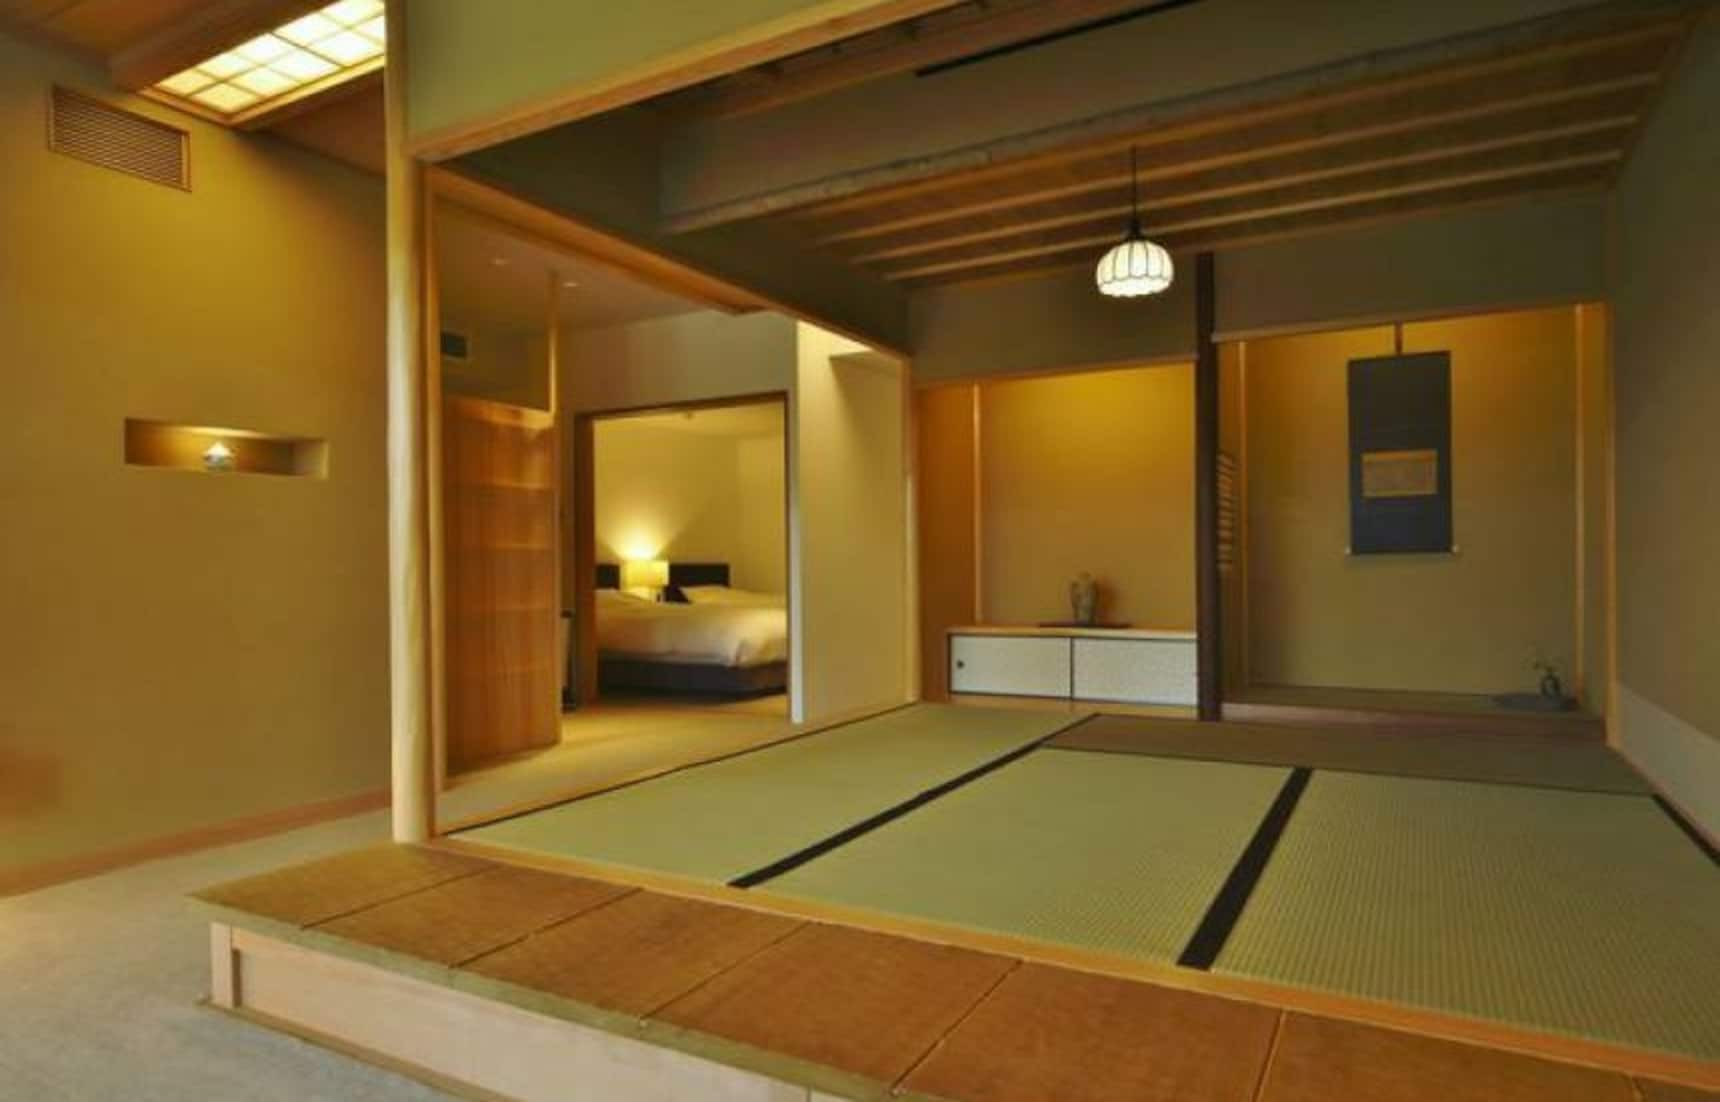 7 Great Hotels for a True Kyoto Experience